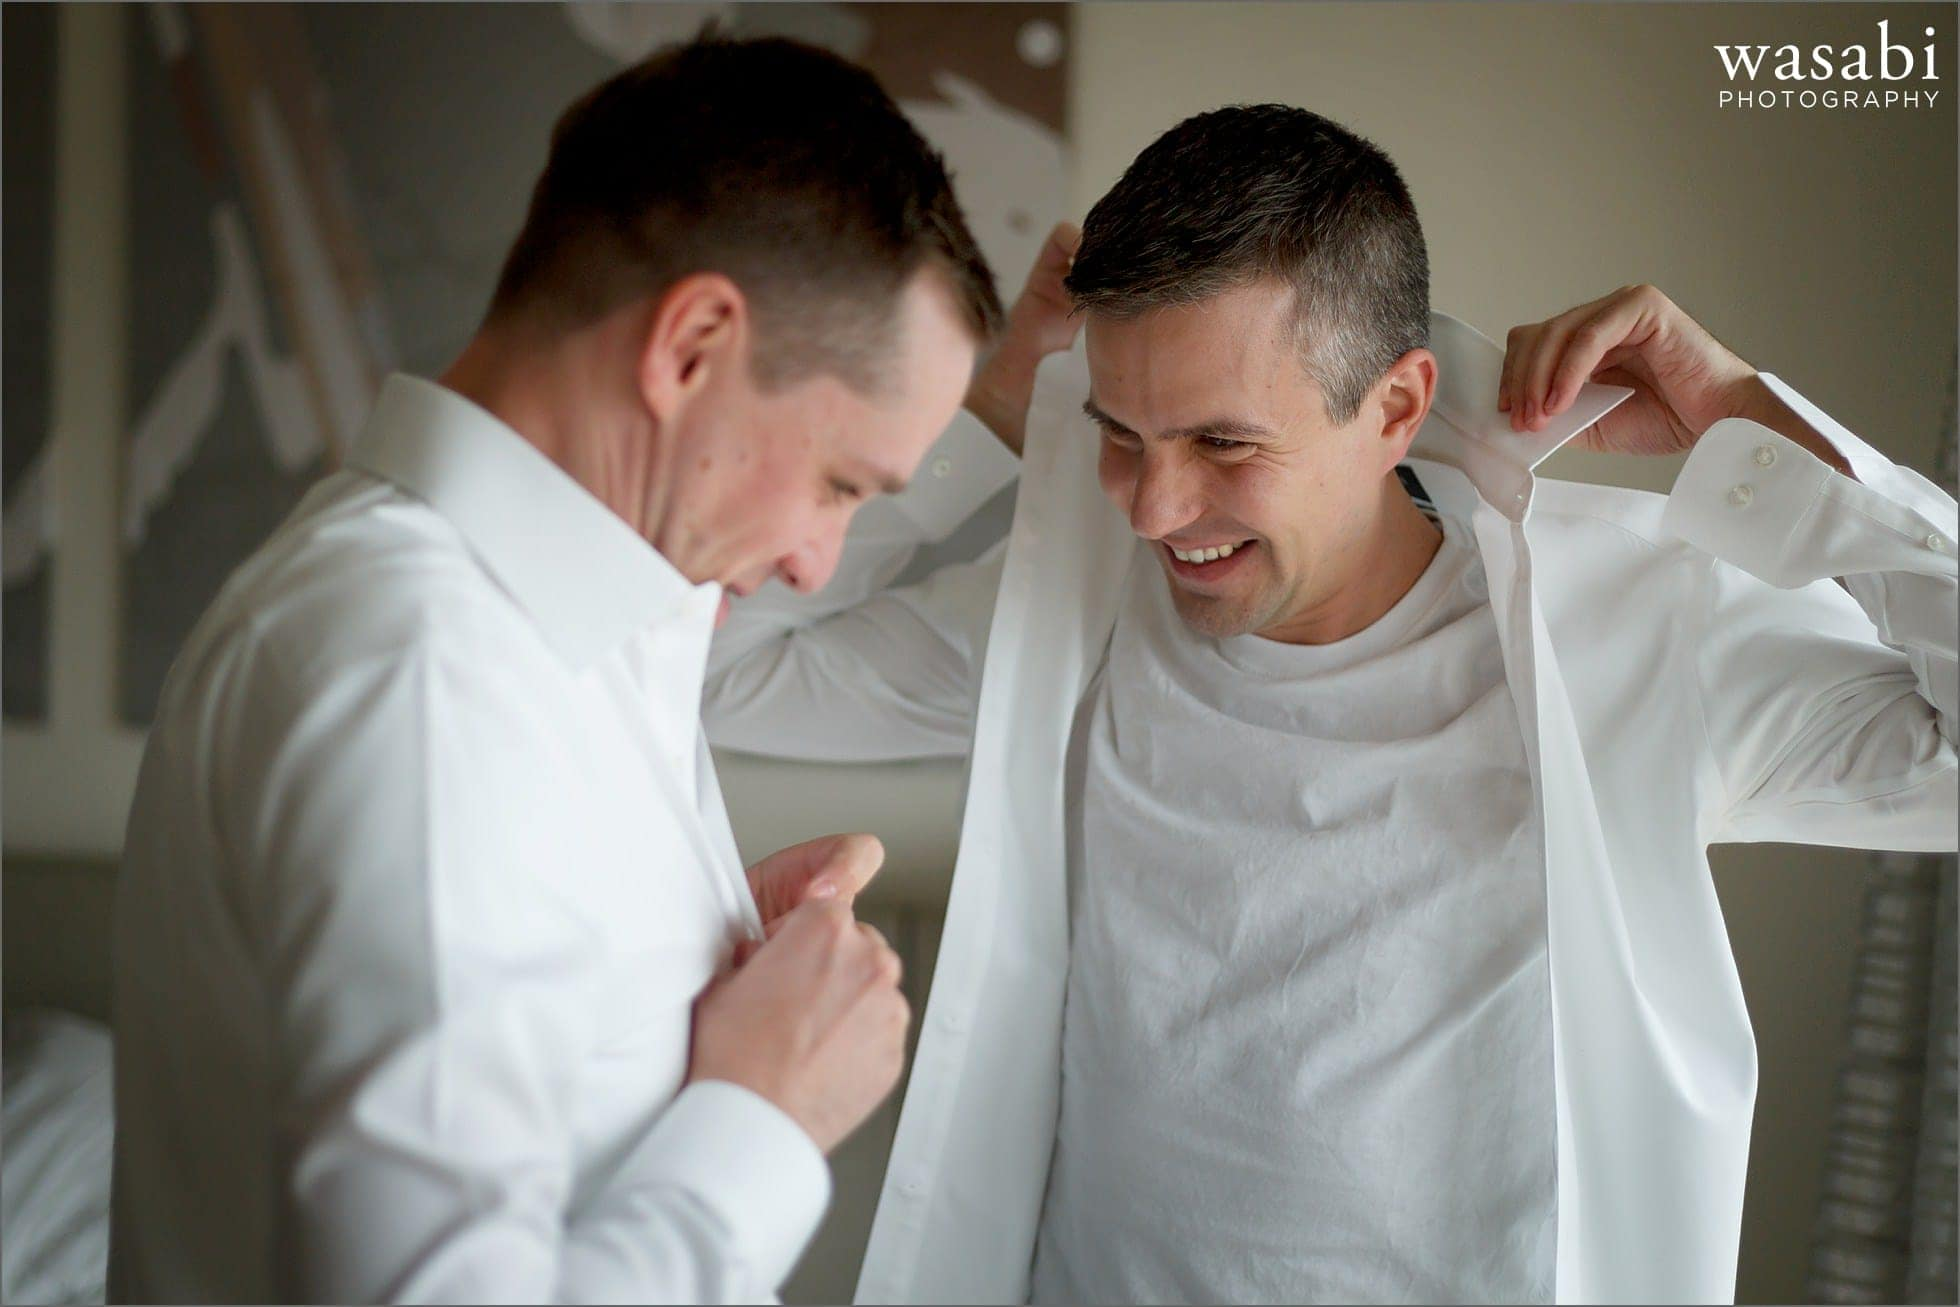 two grooms get ready together for their wedding at bridgeport art center in chicago